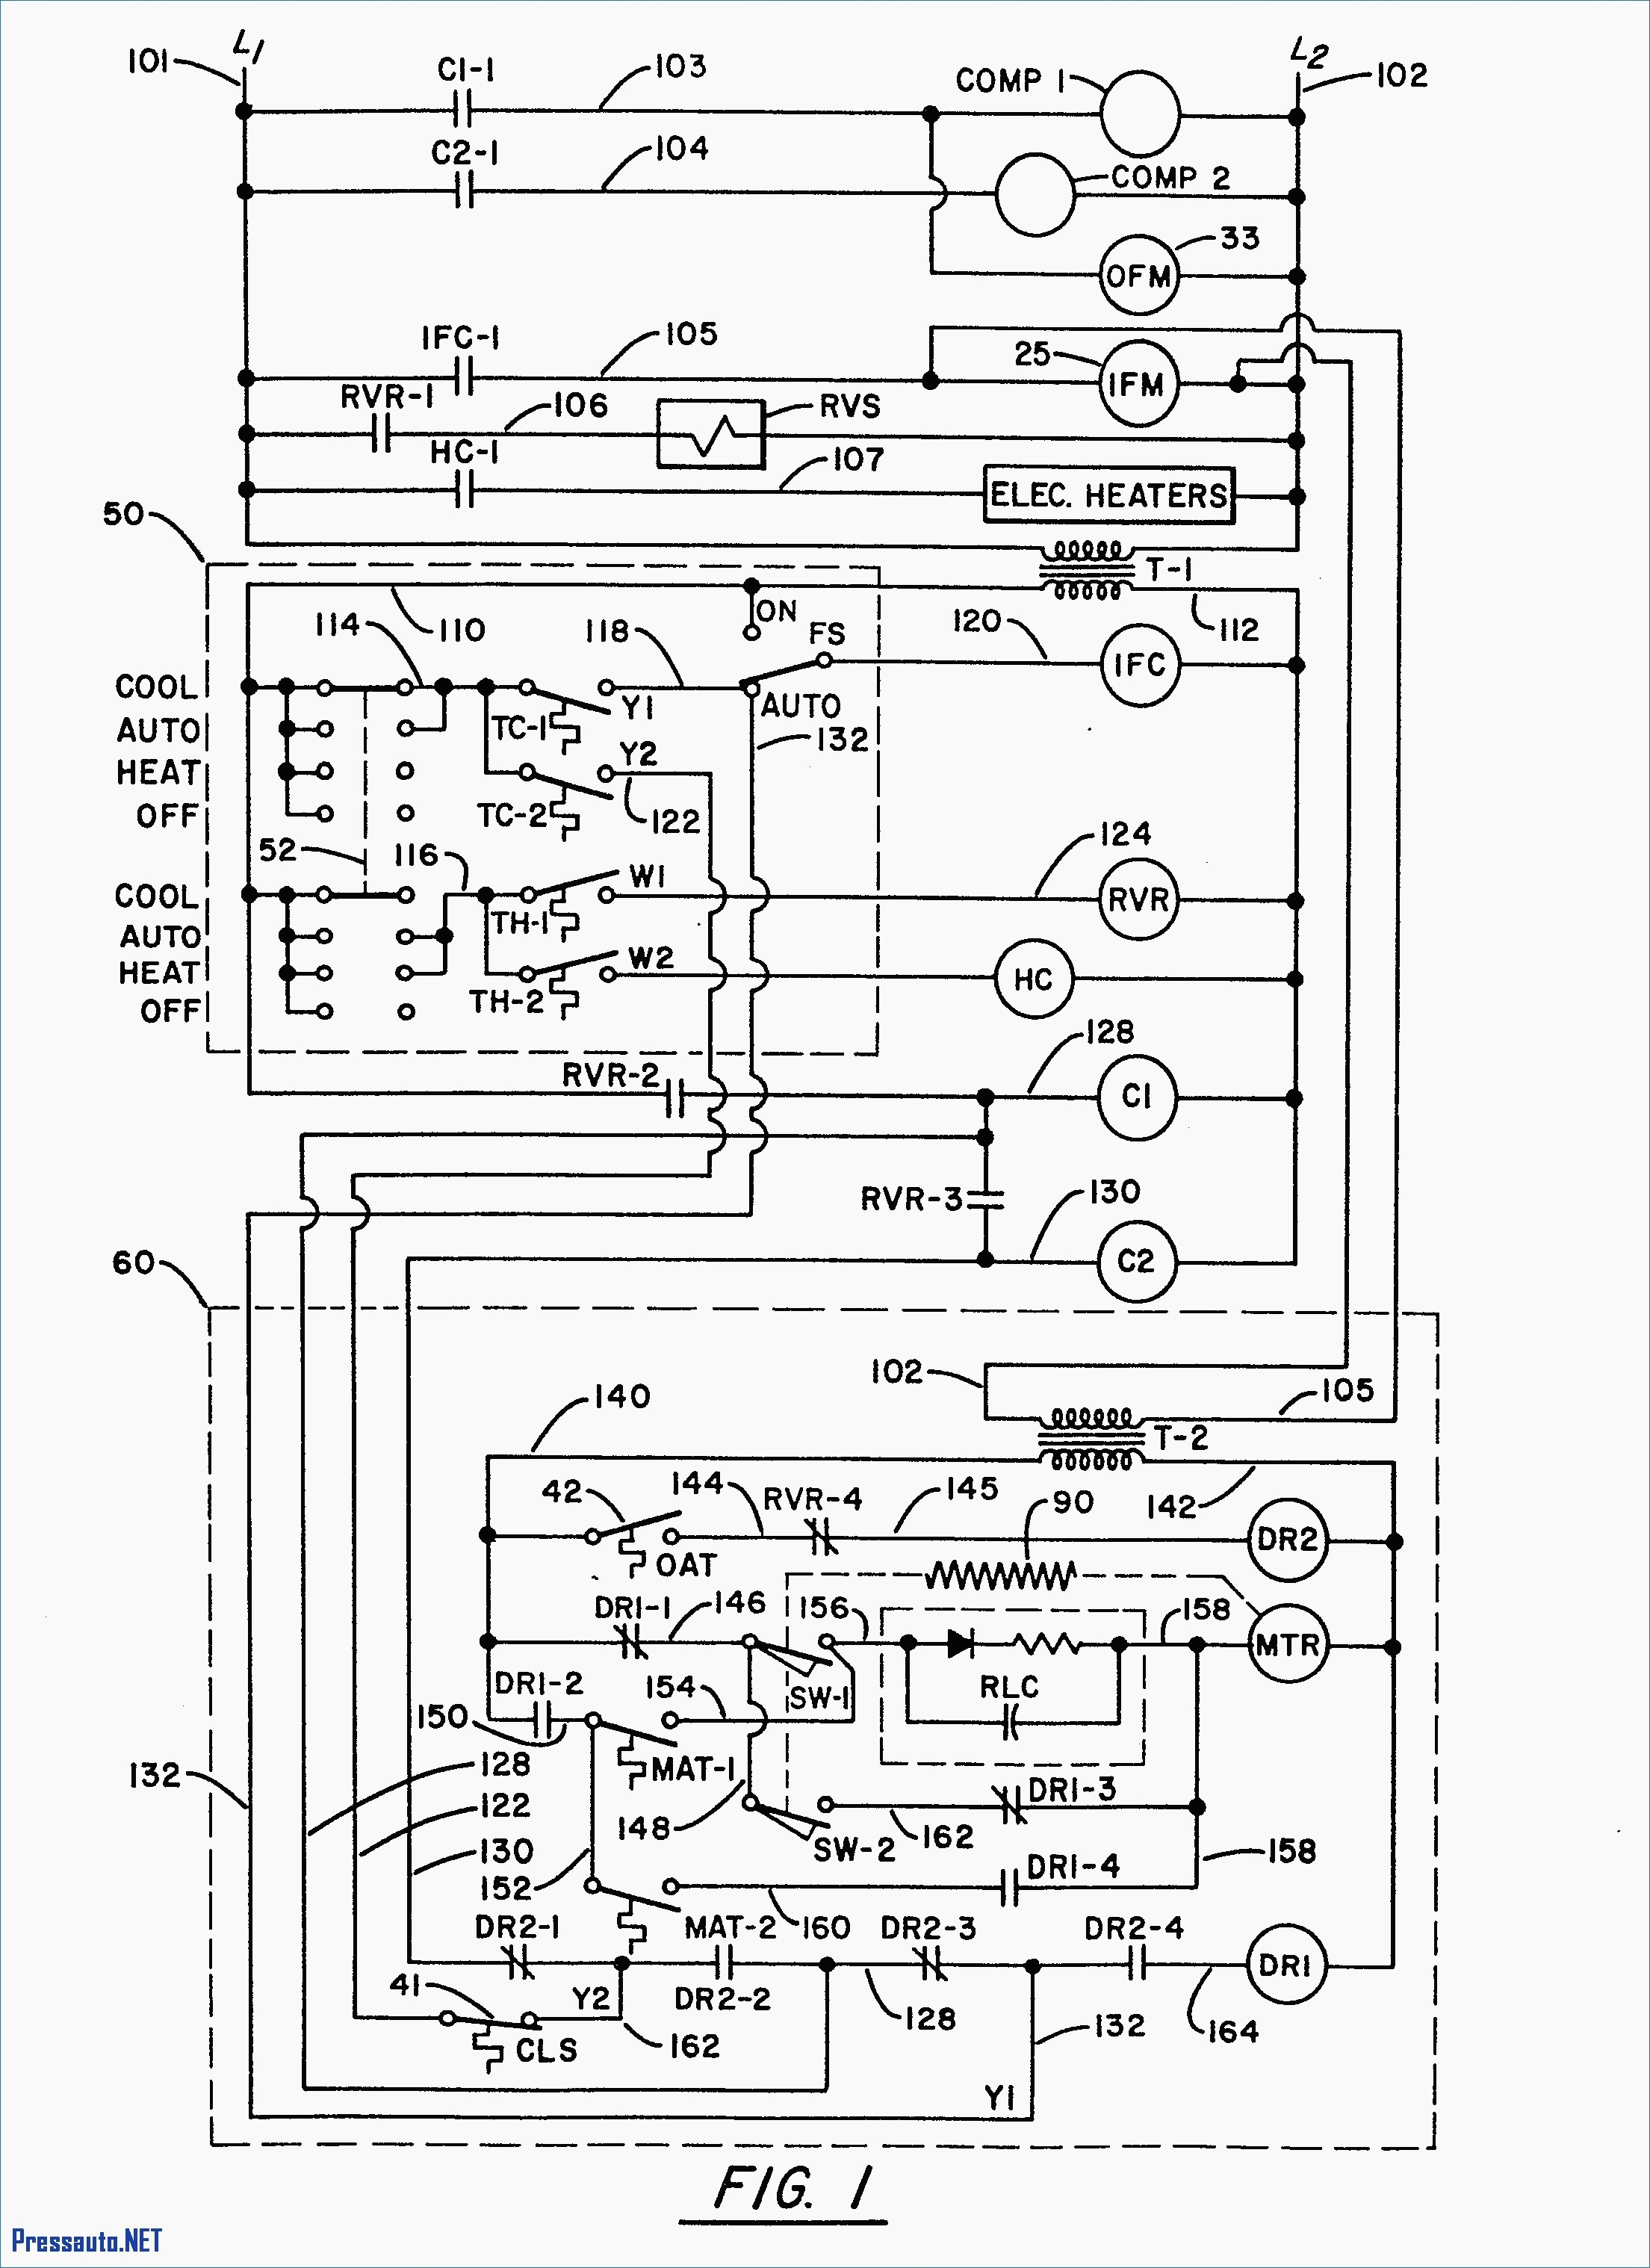 wiring diagram for a travel trailer